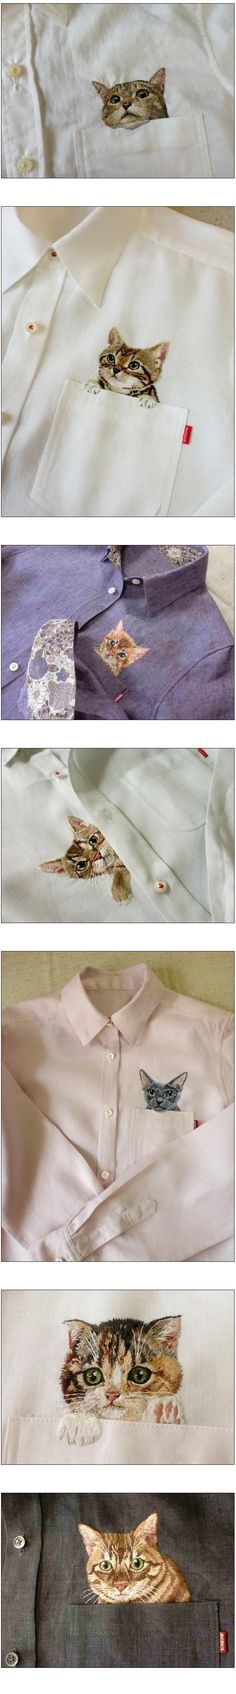 They are extremely cute!!! I don't really like cats but these clothes are so cute!